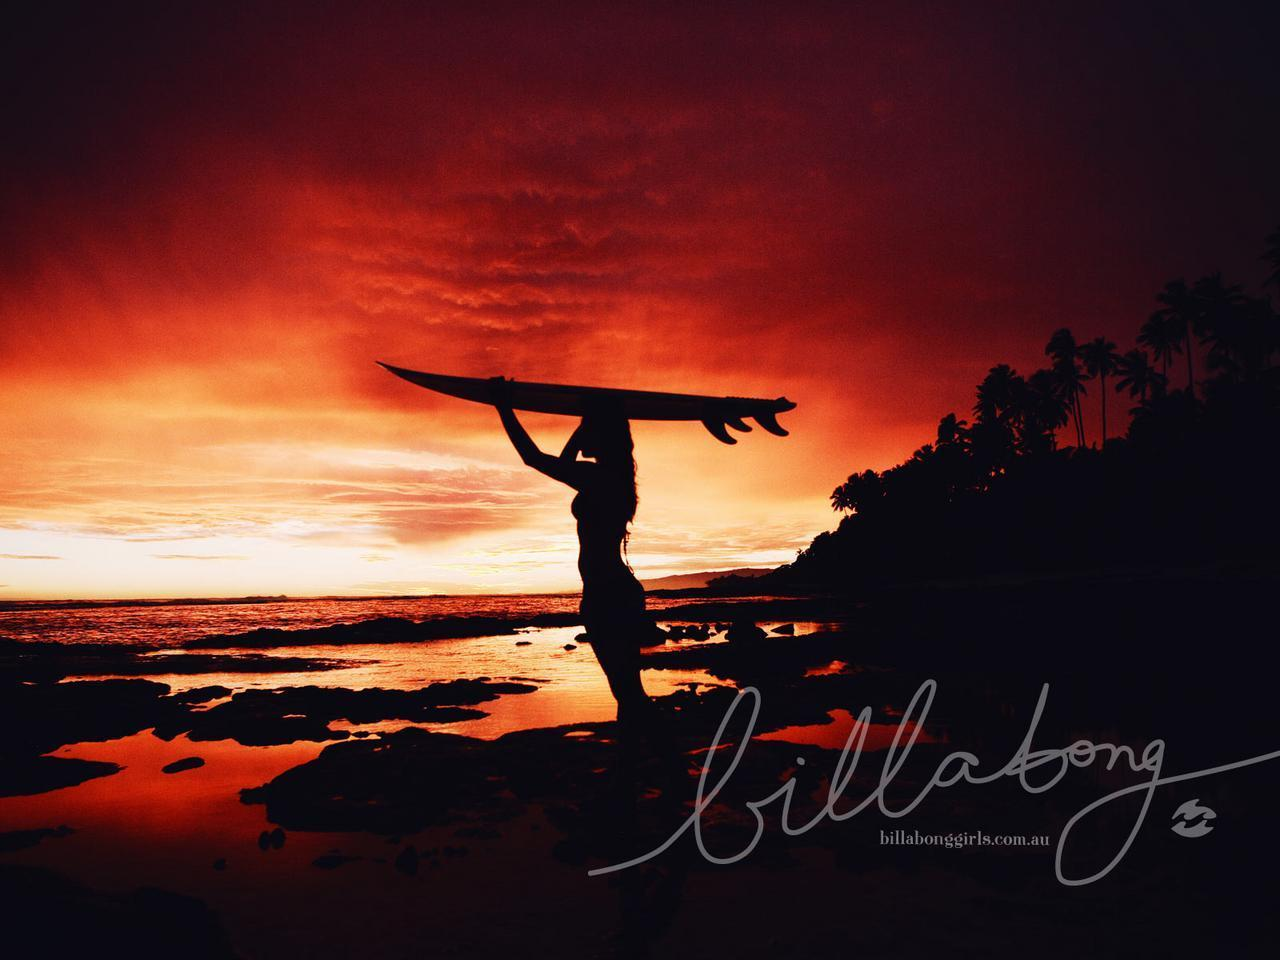 Billabong   Billabong Wallpaper 2282009 1280x960